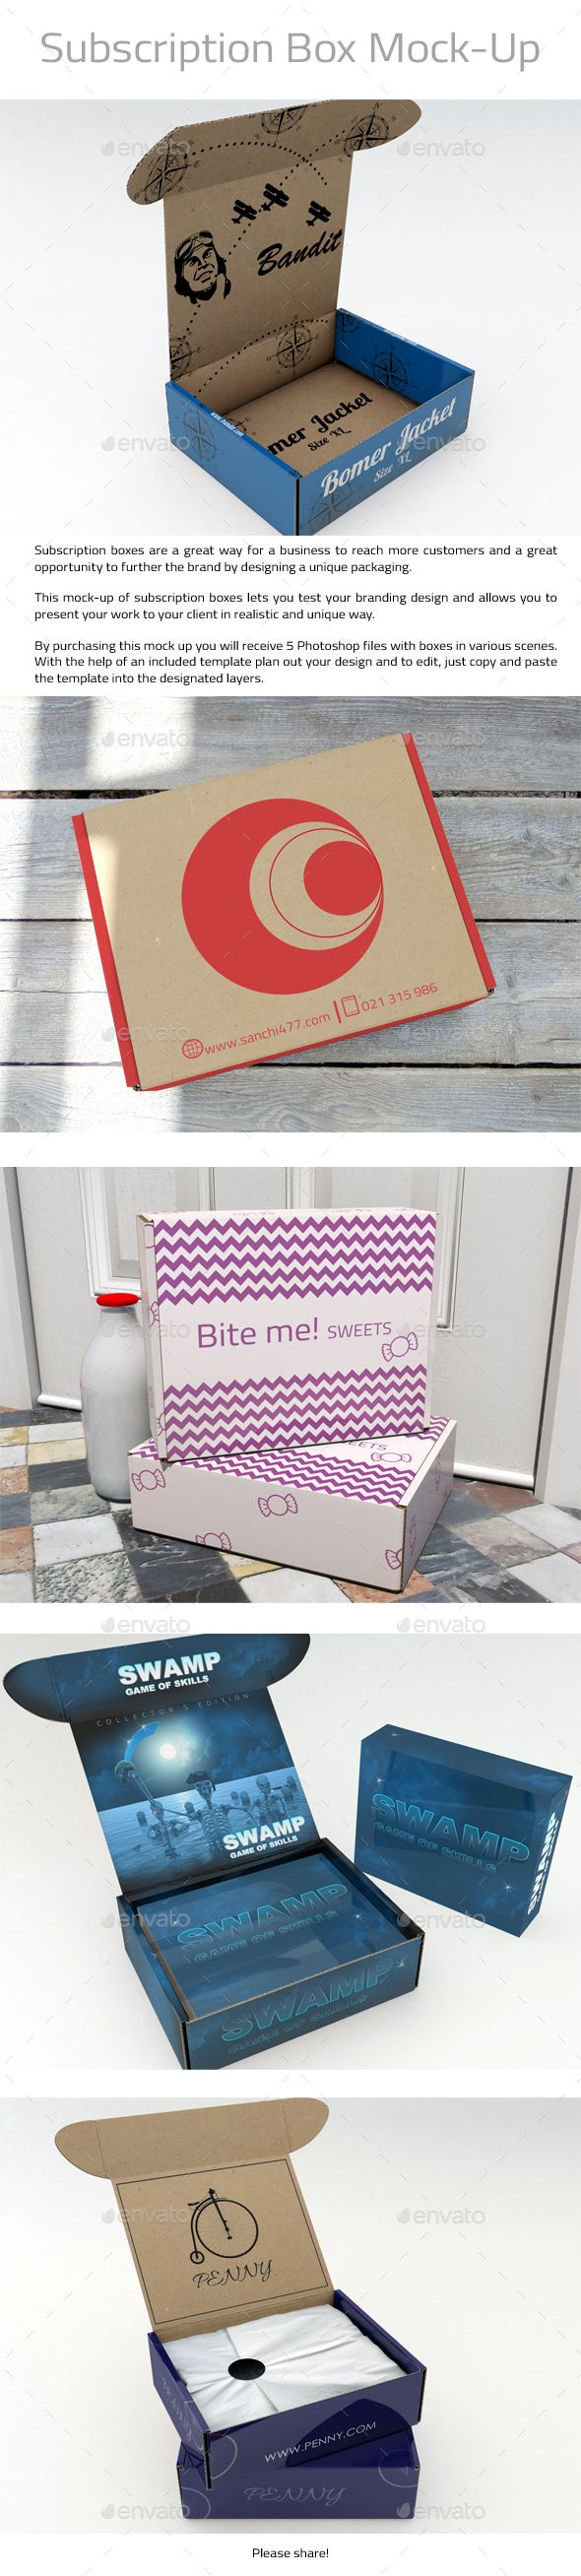 Pin By Best Graphic Design On Mockup Box Packaging Templates Subscription Bo